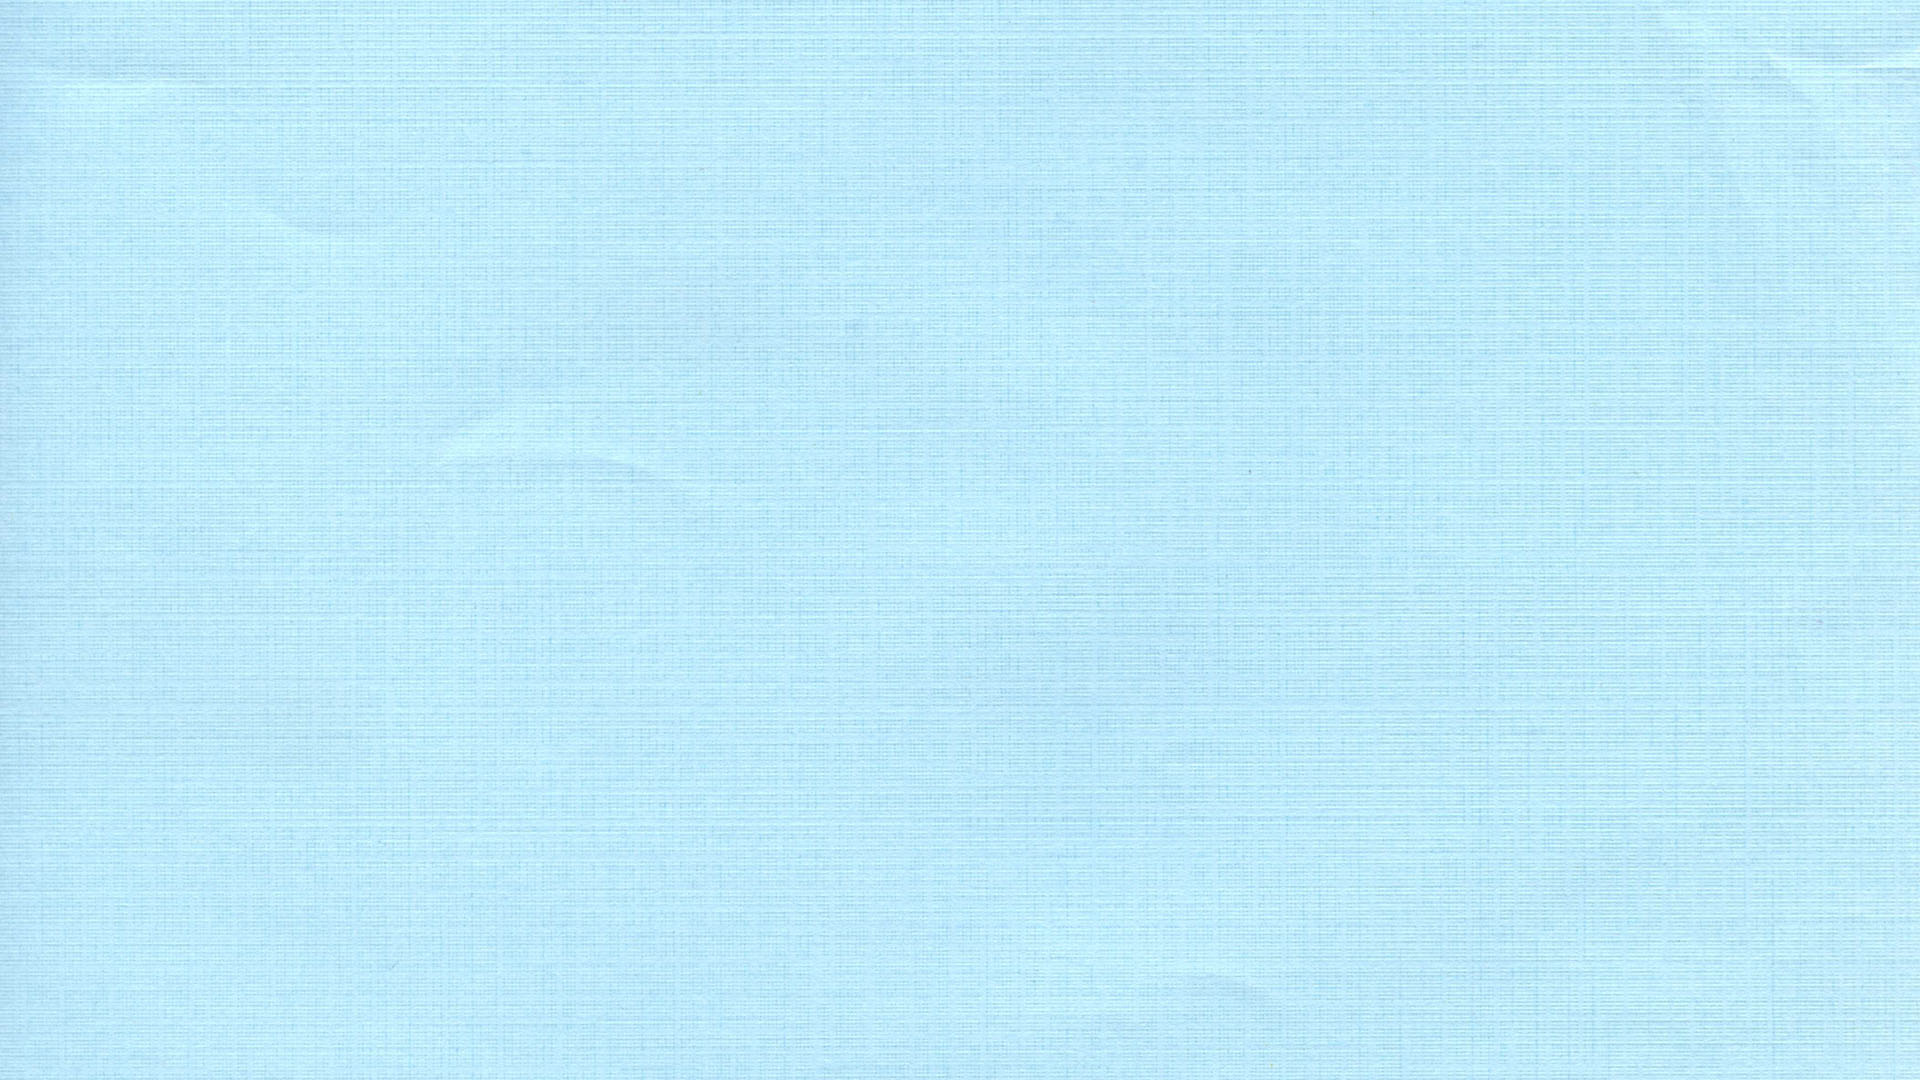 Light blue textured paper by Thaily-stock on DeviantArt